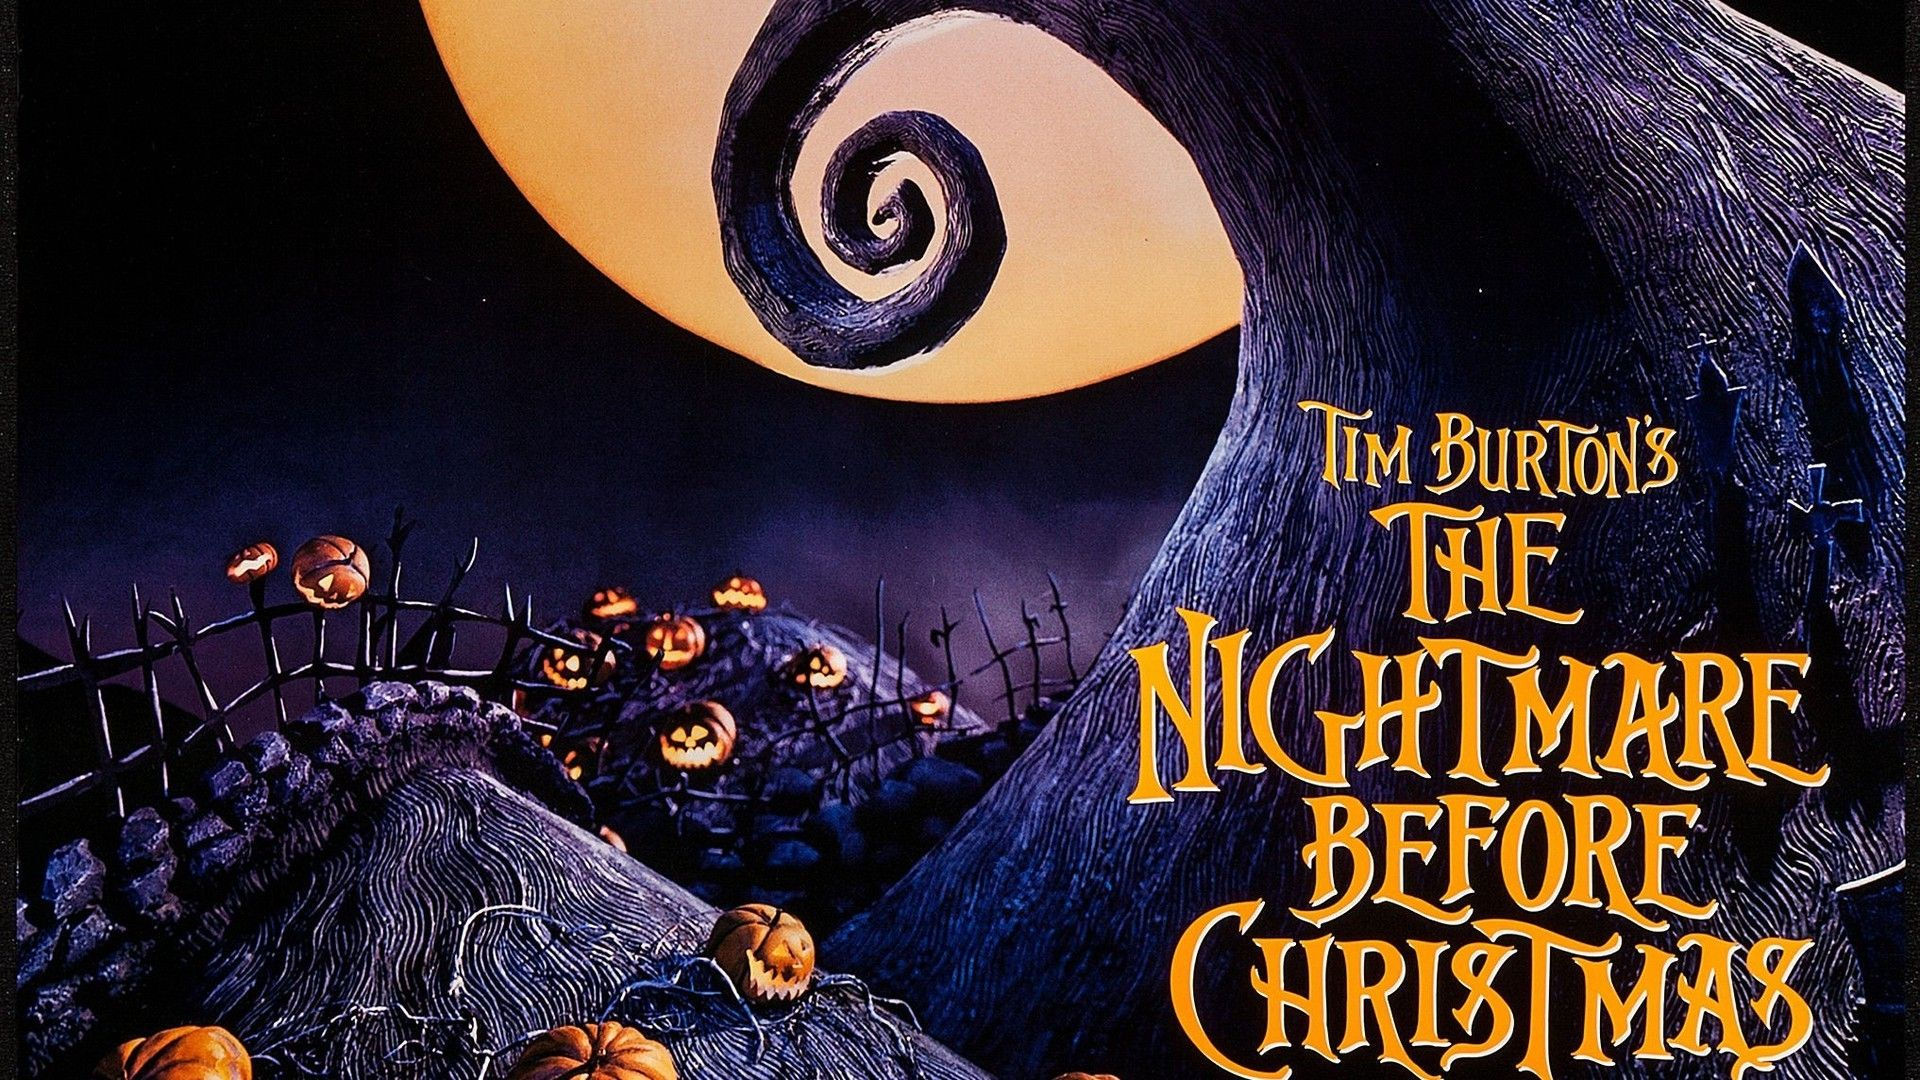 General 1920x1080 The Nightmare Before Christmas Tim Burton Claymation Pumpkin High Quality WallpapersLive